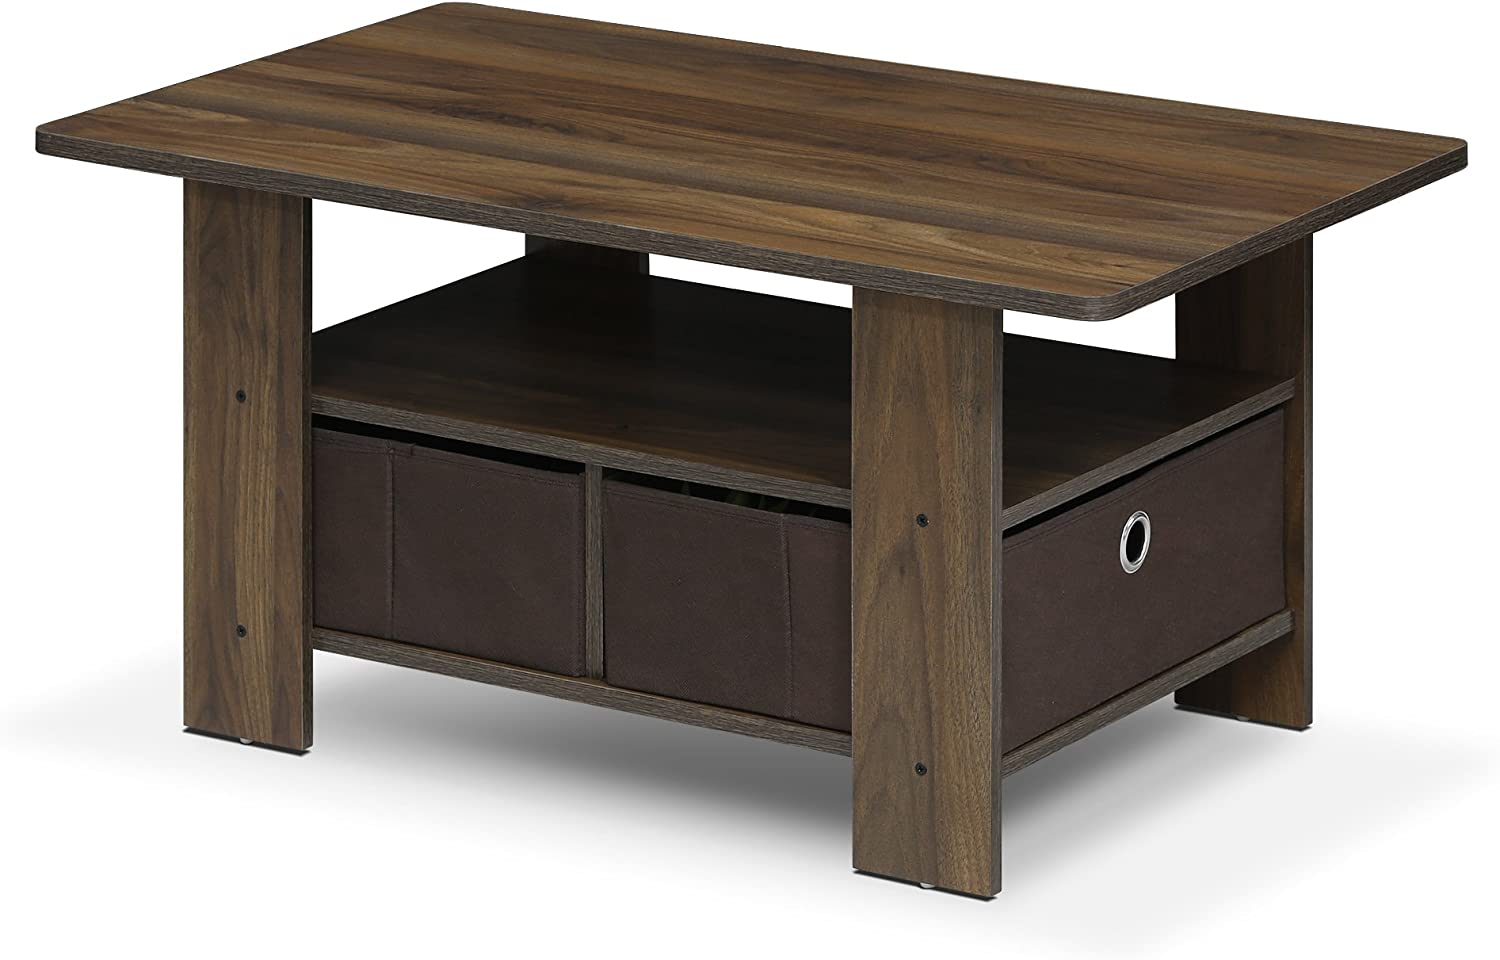 FURINNO Andrey Coffee Table with Bin Drawer, Columbia Walnut/Dark Brown